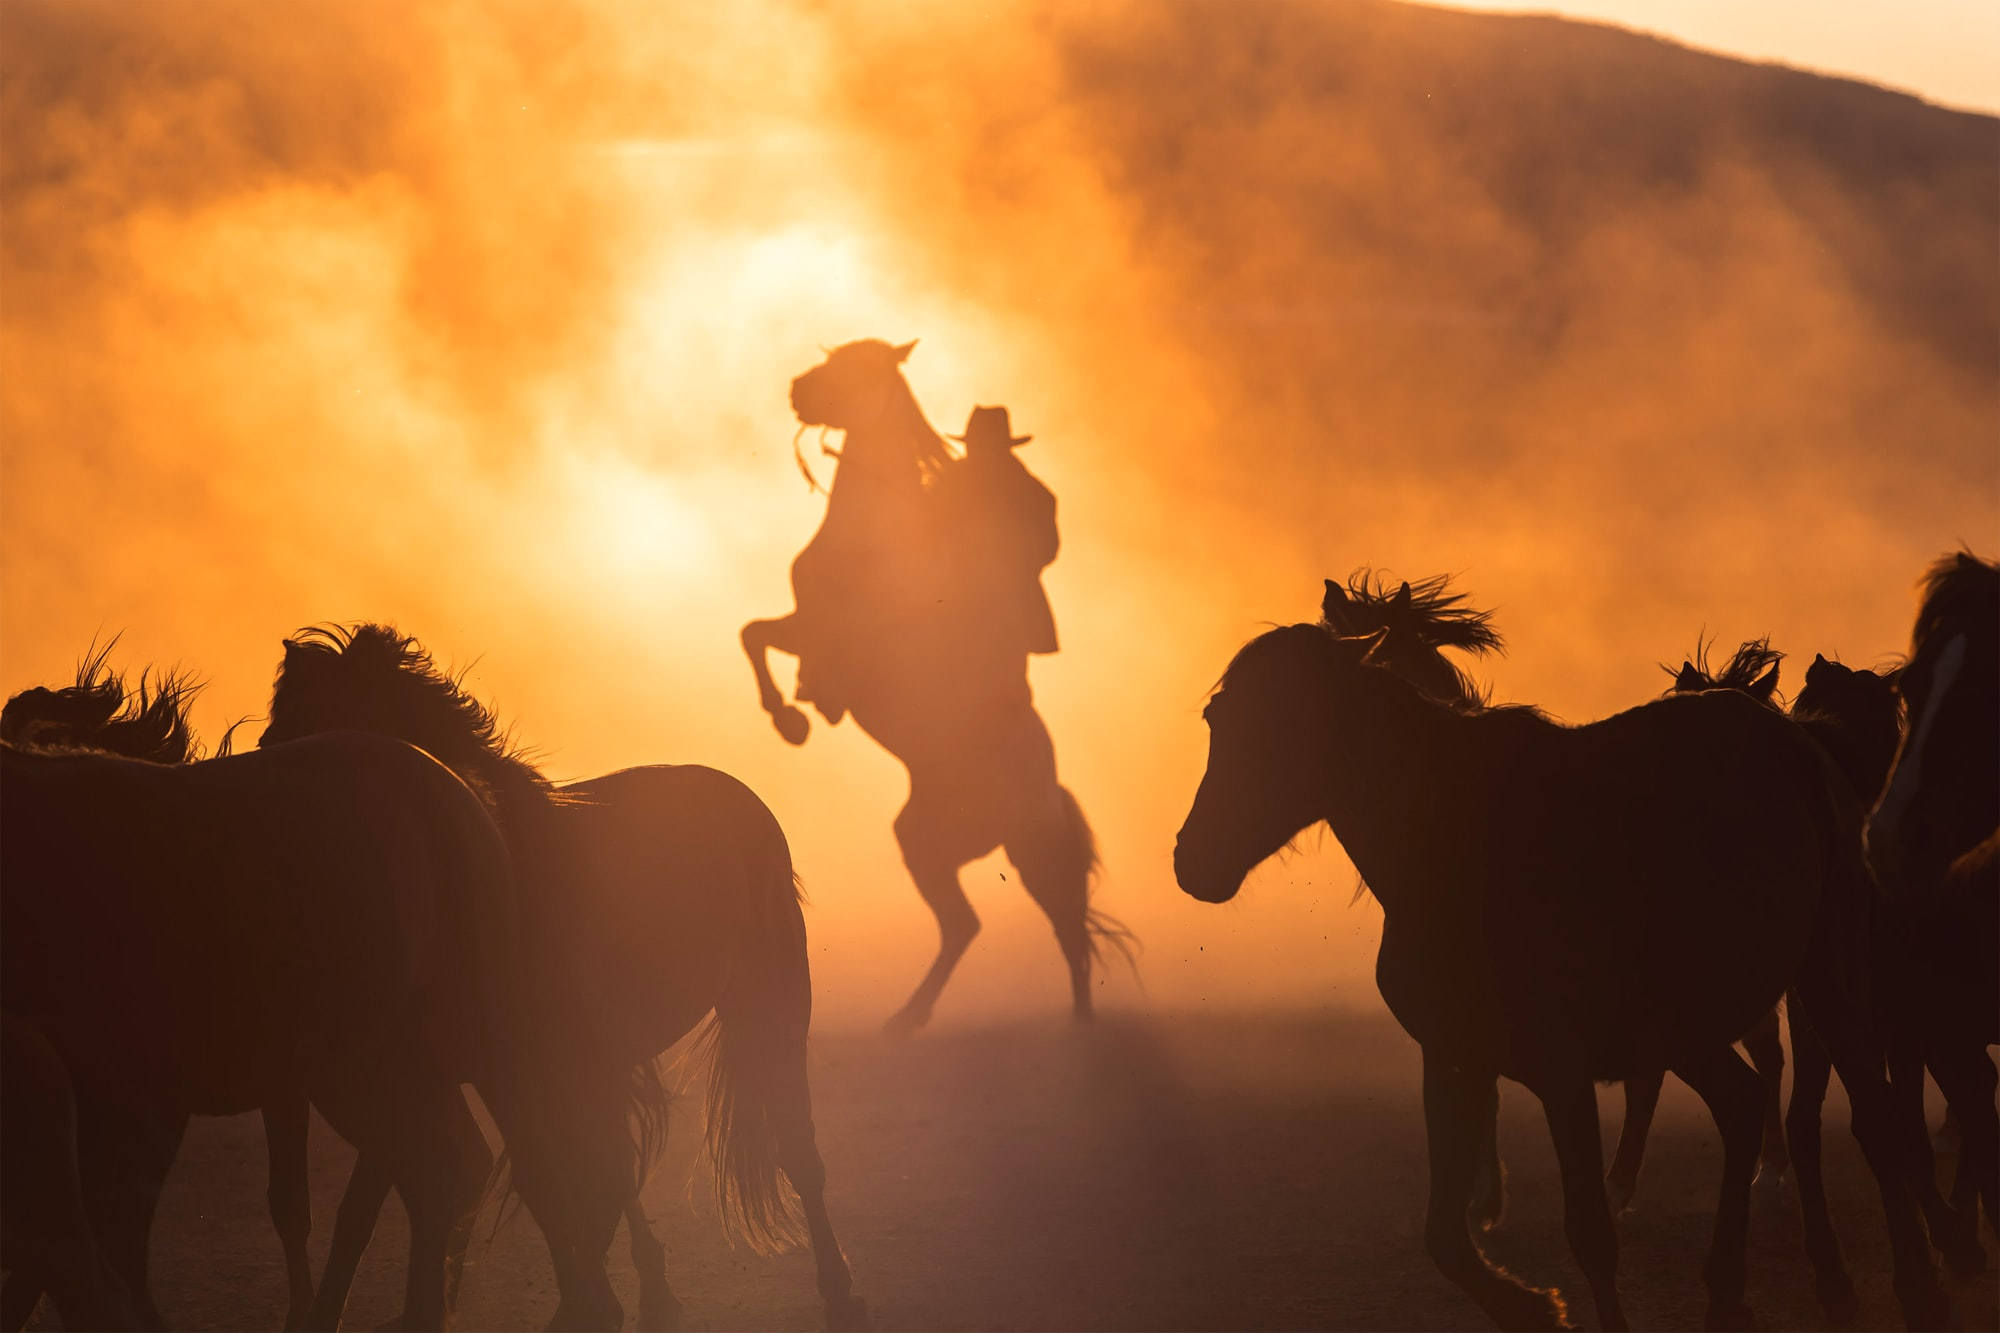 This is one of the pictures I took of the wild horses in Turkey. I was so lucky to capture the horse rearing with the cowboy on the back. The whole scene was just perfect as the wild horses in front of them created this dust and together with the sunset it formed a silhouette out of them! This must be one of the most beautiful pictures I've taken to date!  Check out more of my shots on https://www.instagram.com/daniilvnoutchkov/